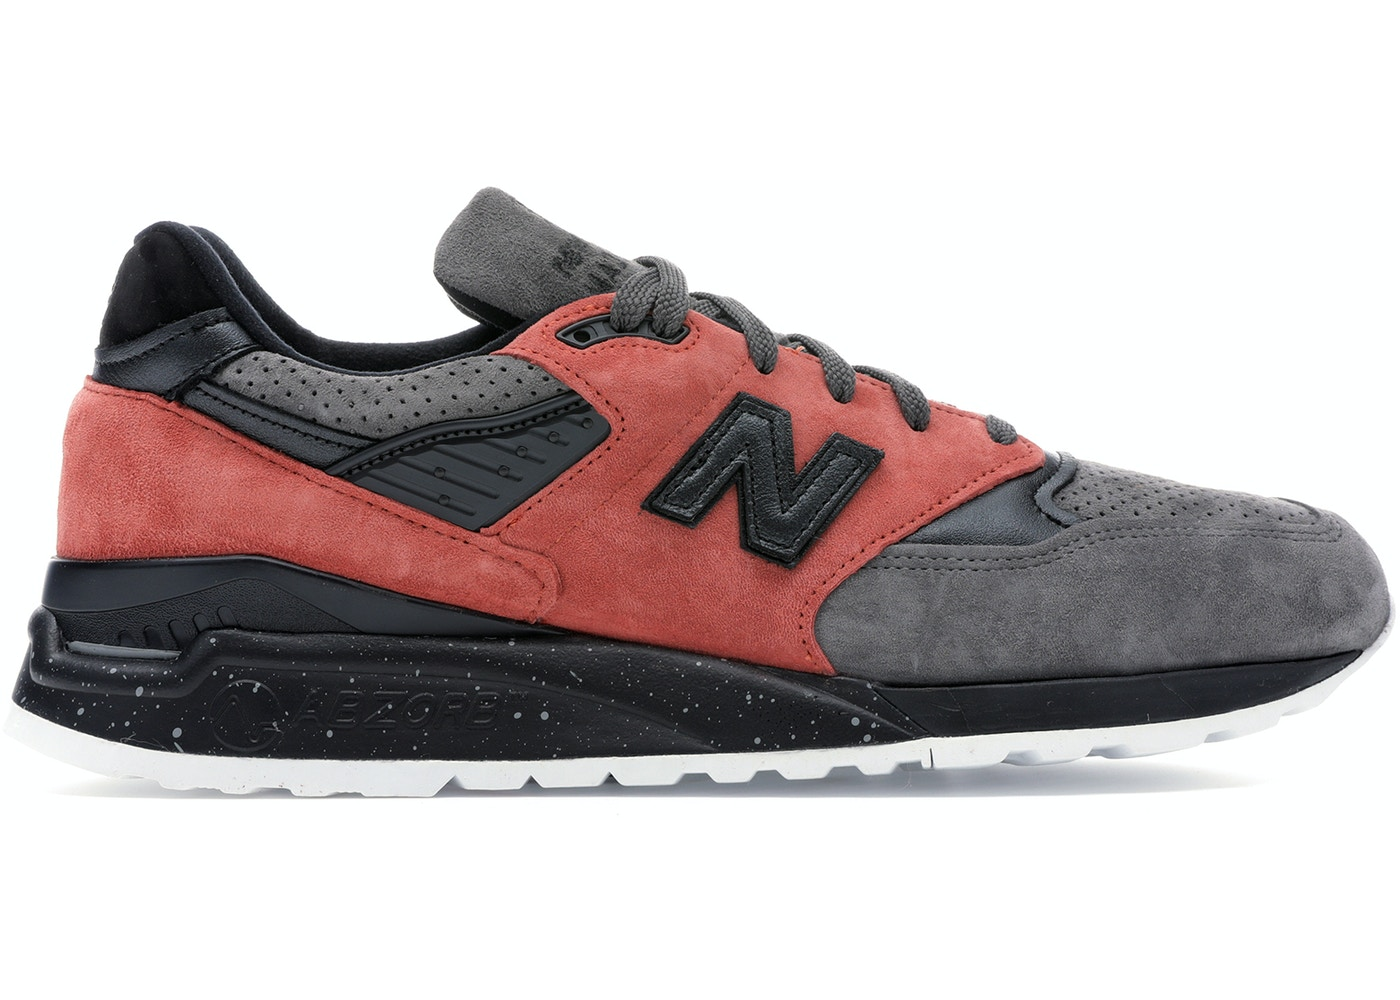 new style 2192d 2e4f6 New Balance 998 Todd Snyder Sunset Pink